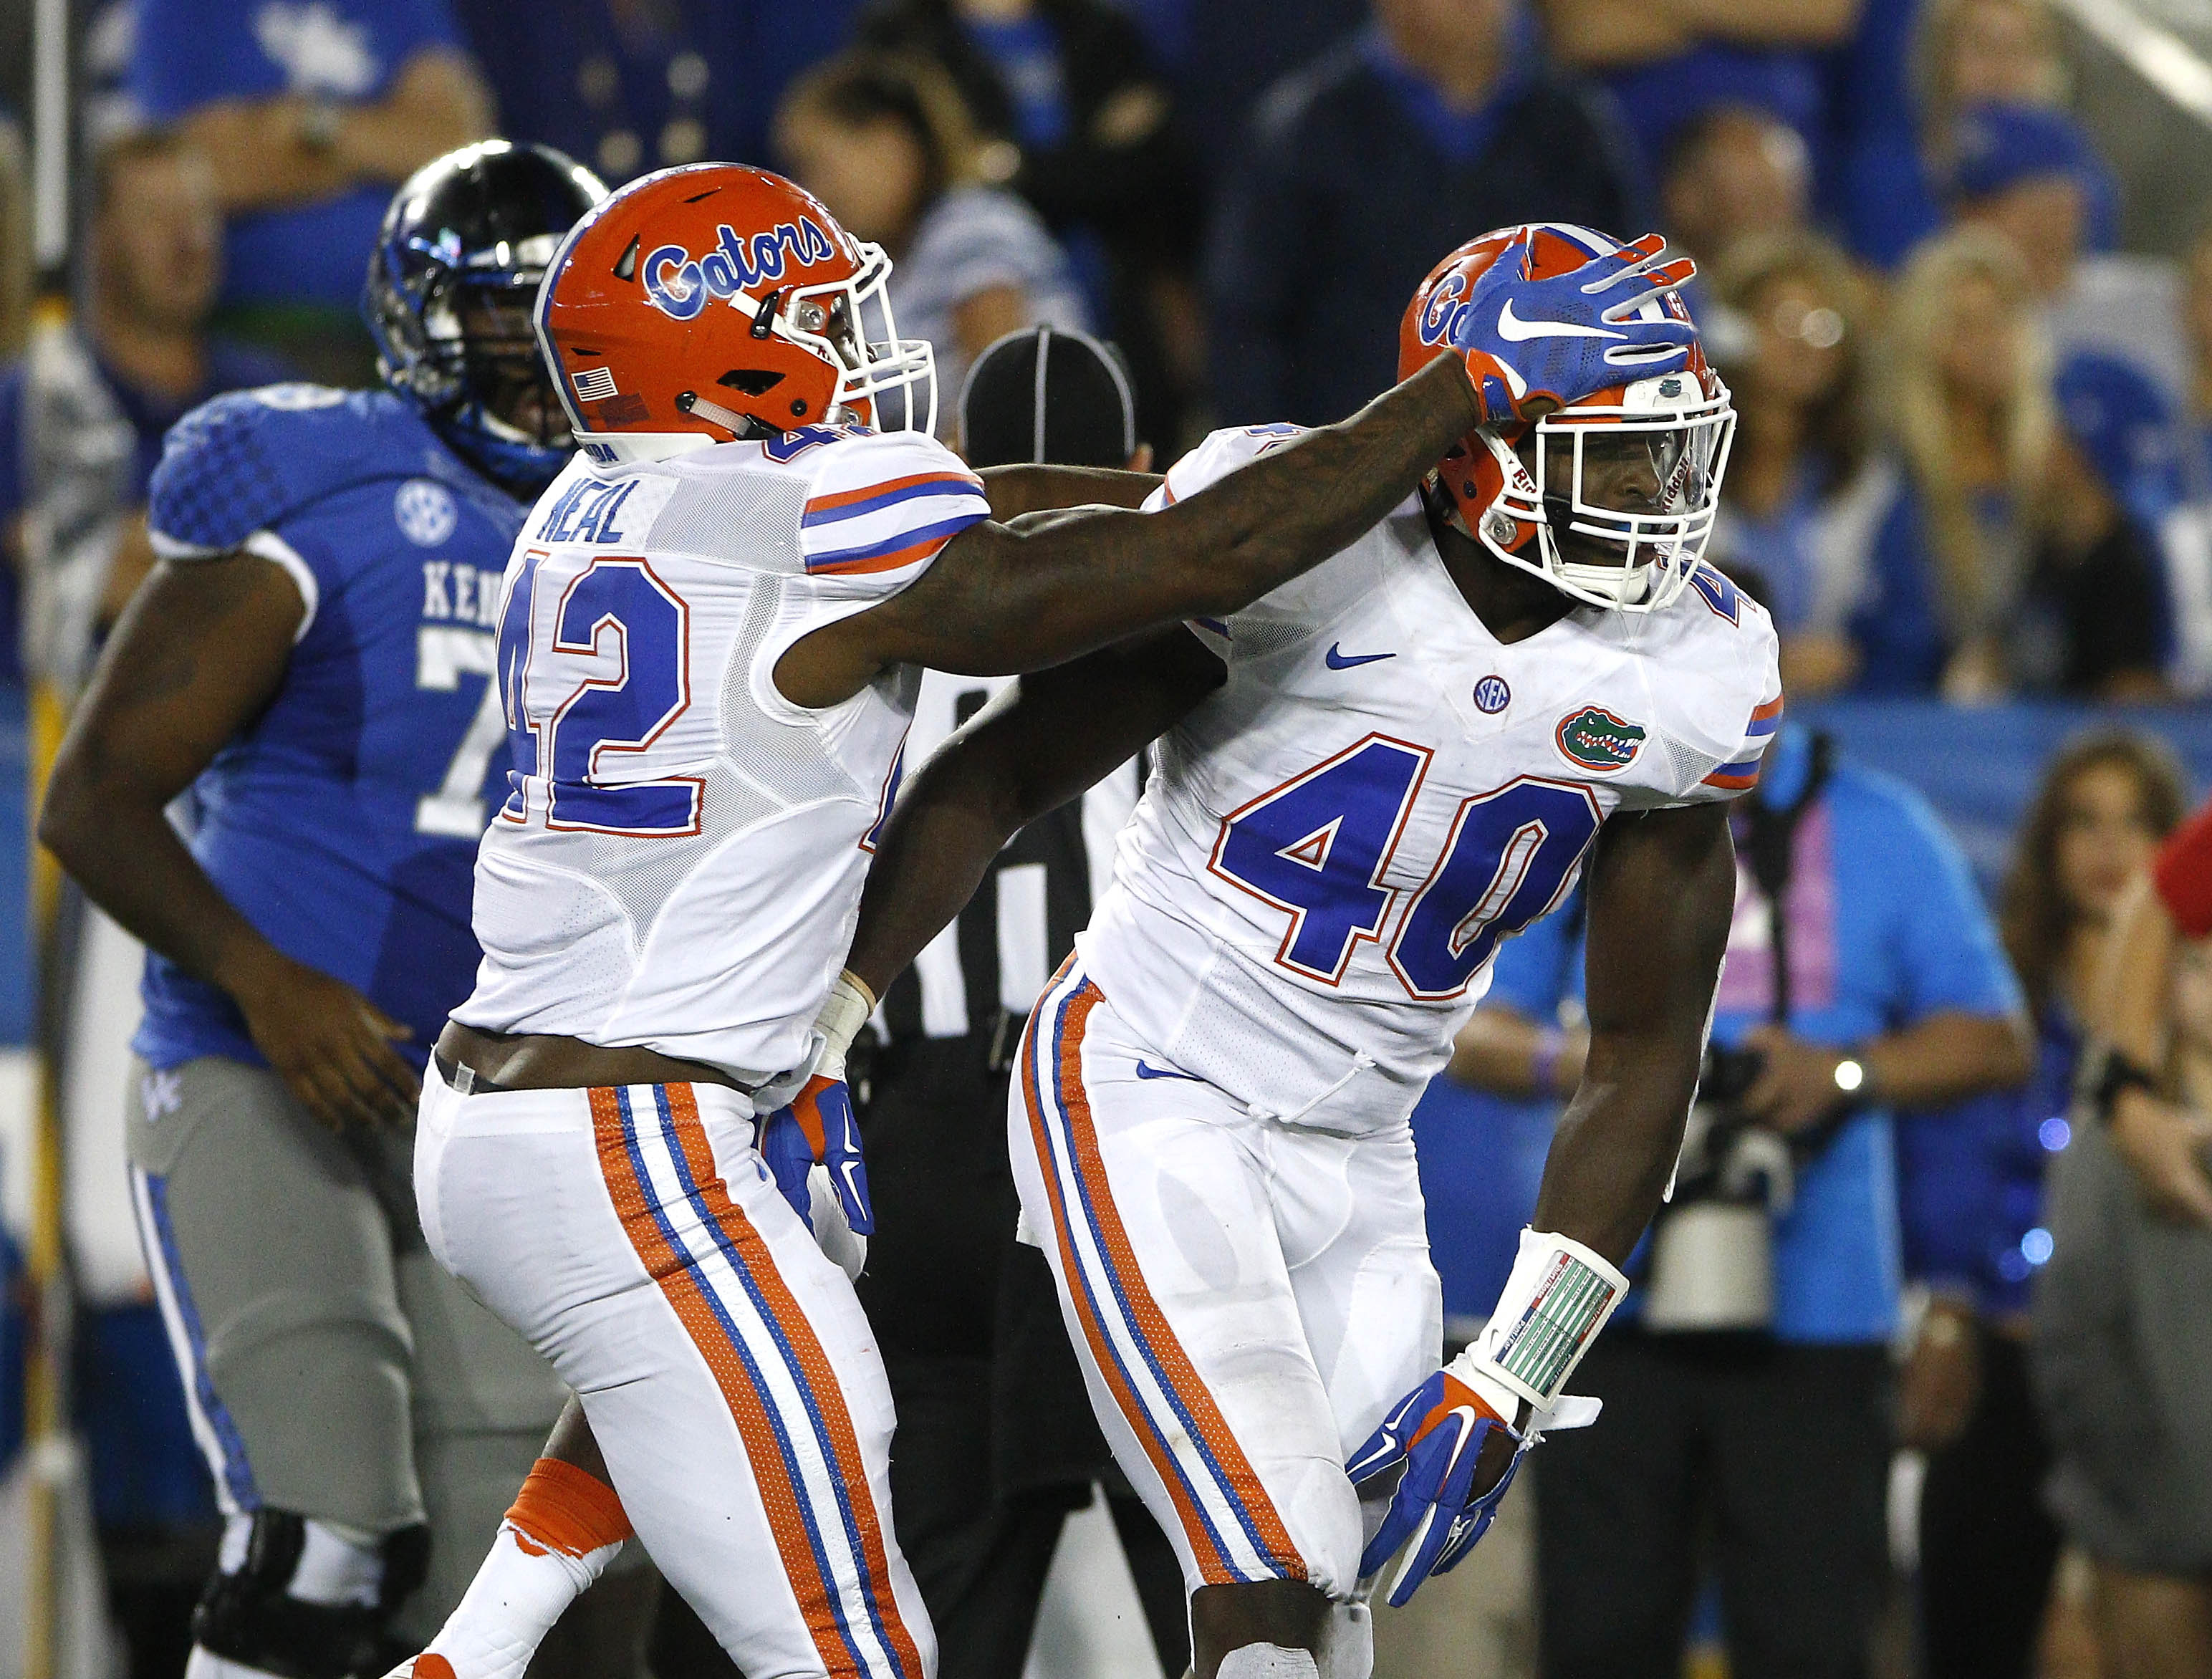 Sep 19, 2015; Lexington, KY, USA; Florida Gators defensive back Keanu Neal (42) and linebacker Jarrad Davis (40) celebrate during the game against the Kentucky Wildcats at Commonwealth Stadium. Florida defeated Kentucky 14-9. Mandatory Credit: Mark Zerof-USA TODAY Sports